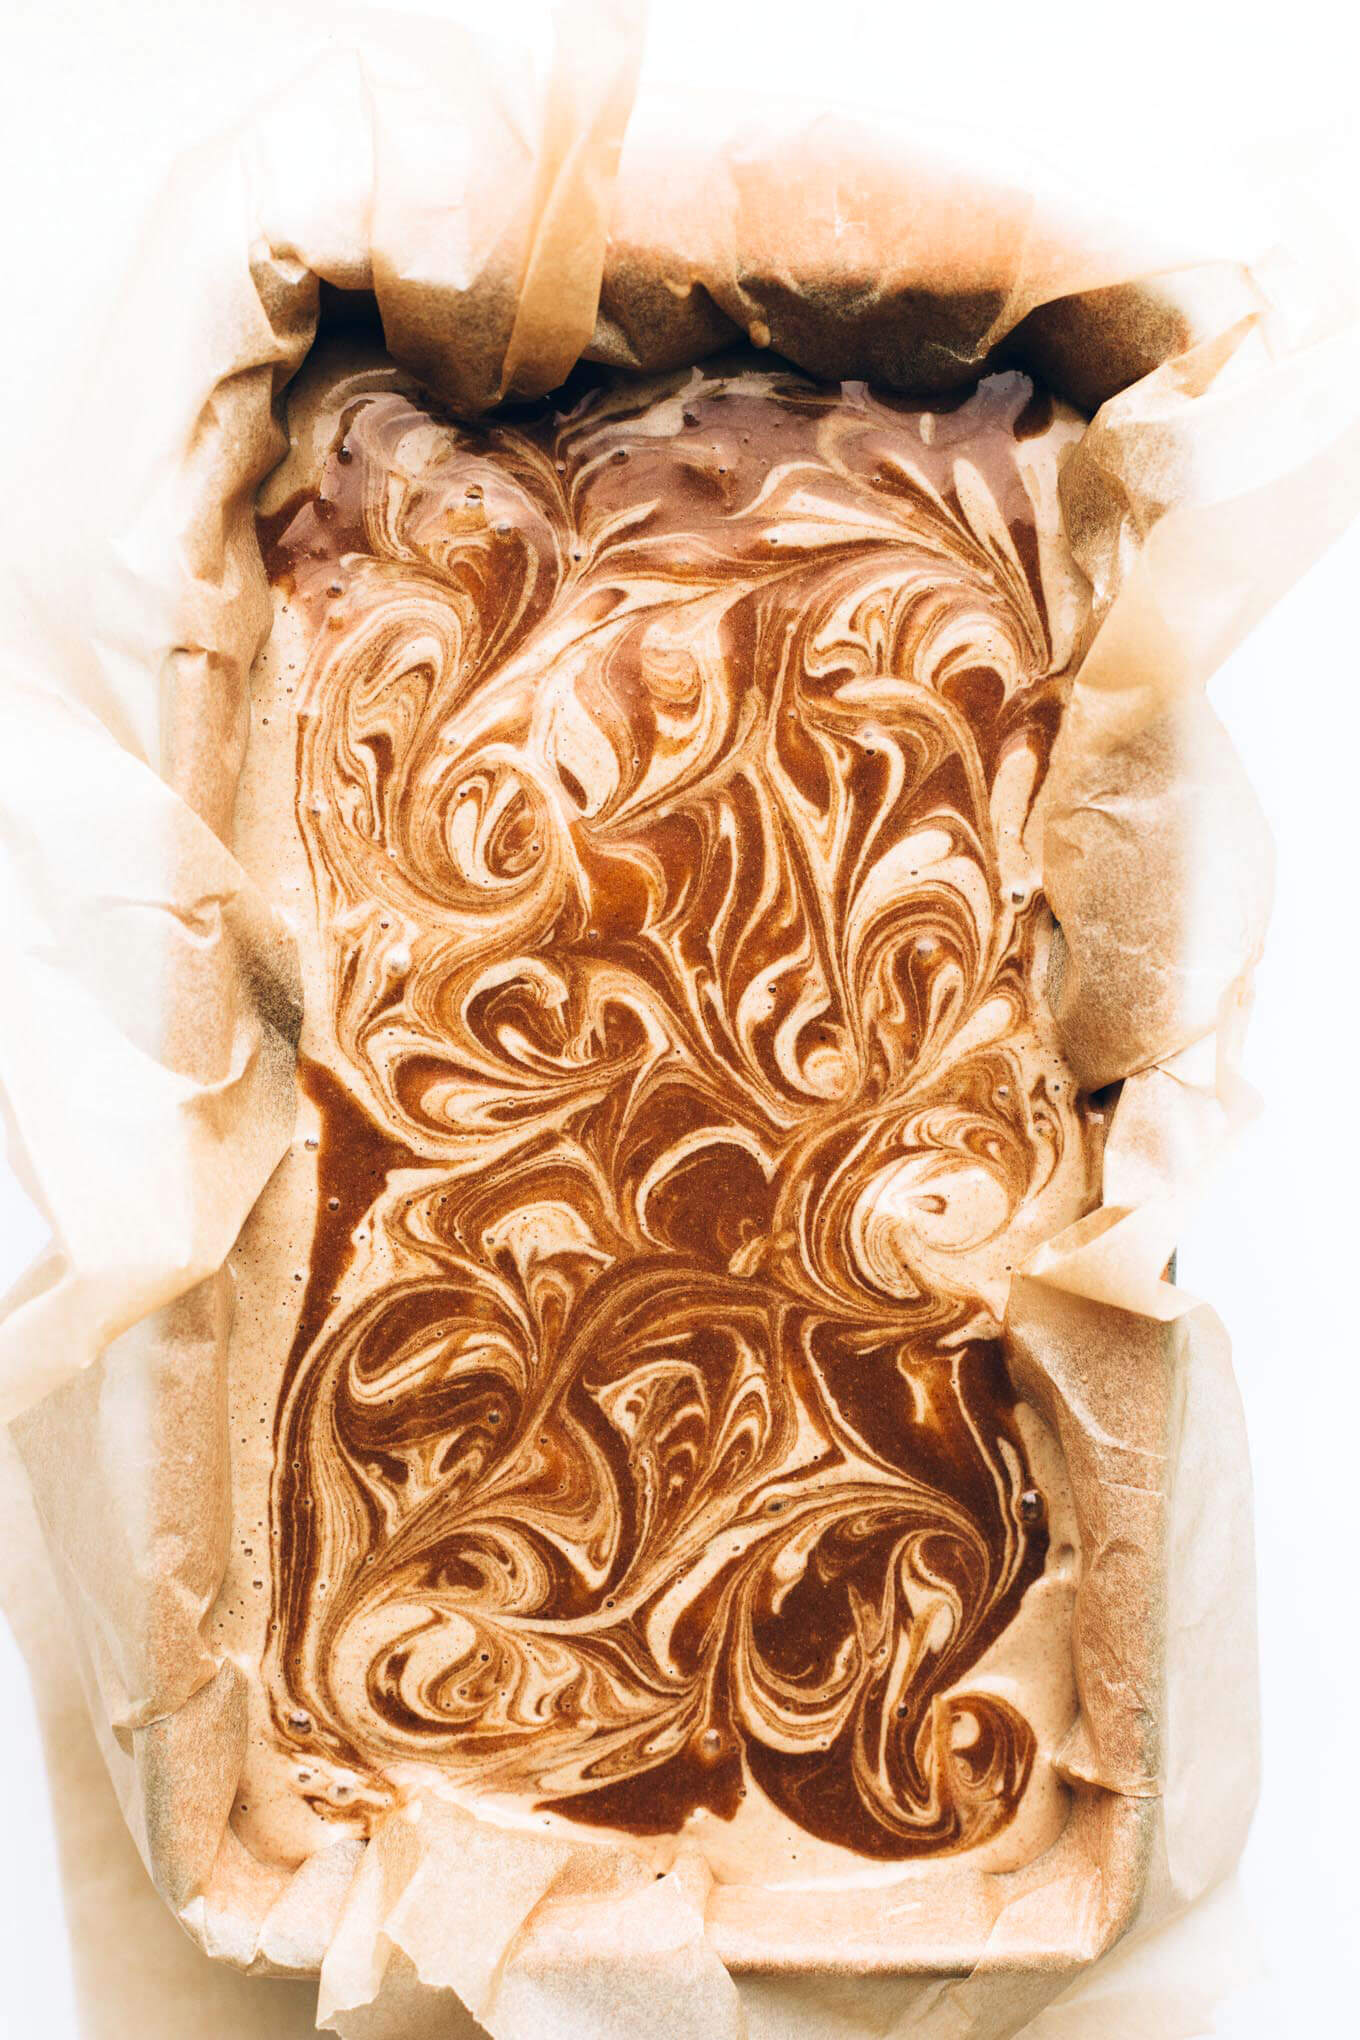 Vegan No-Churn Cinnamon Roll Ice Cream